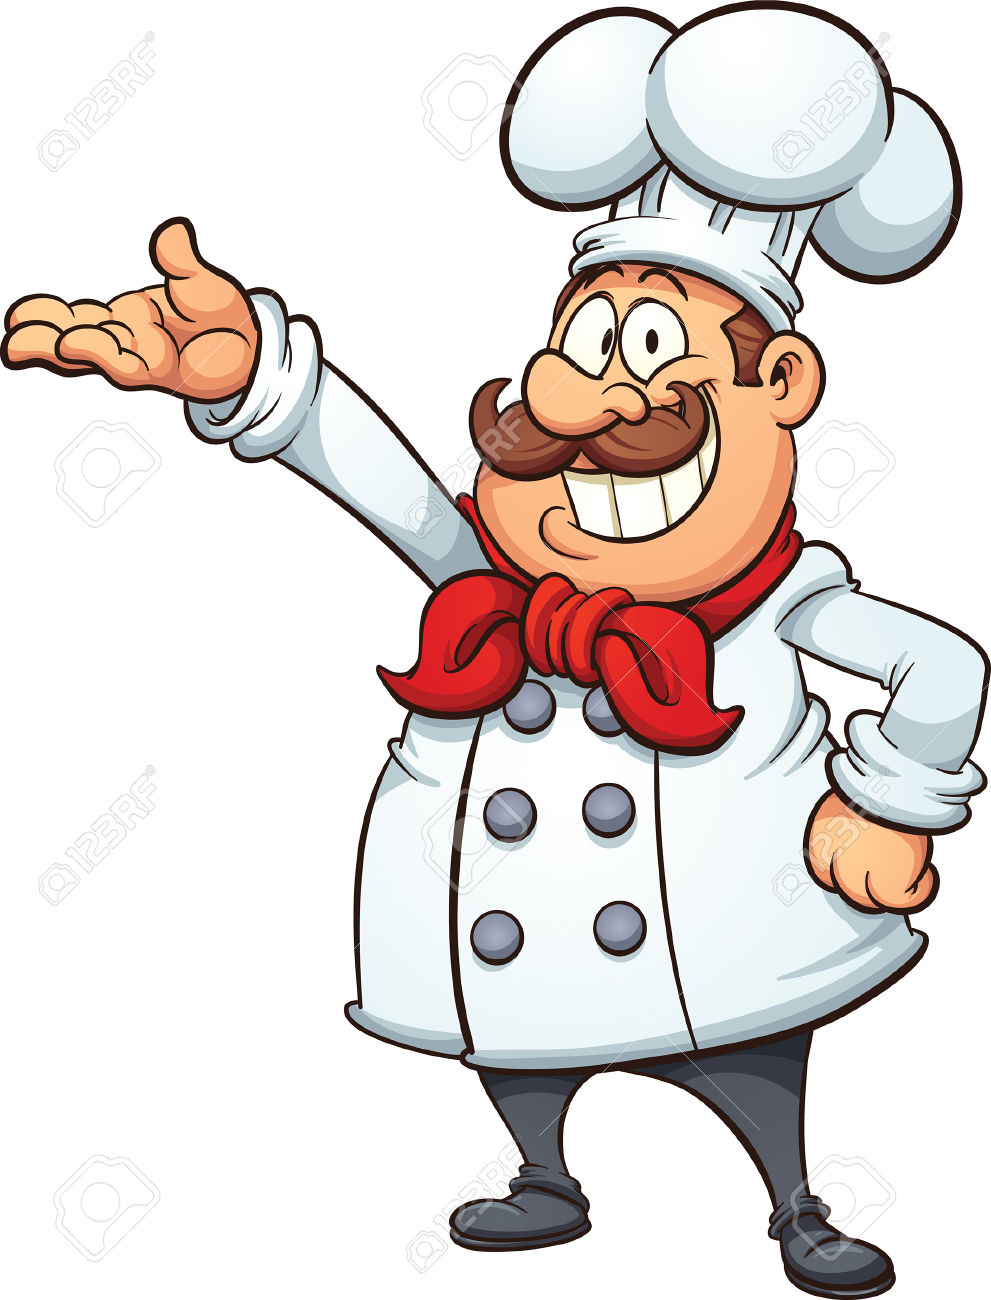 Cartoon chef clipart.